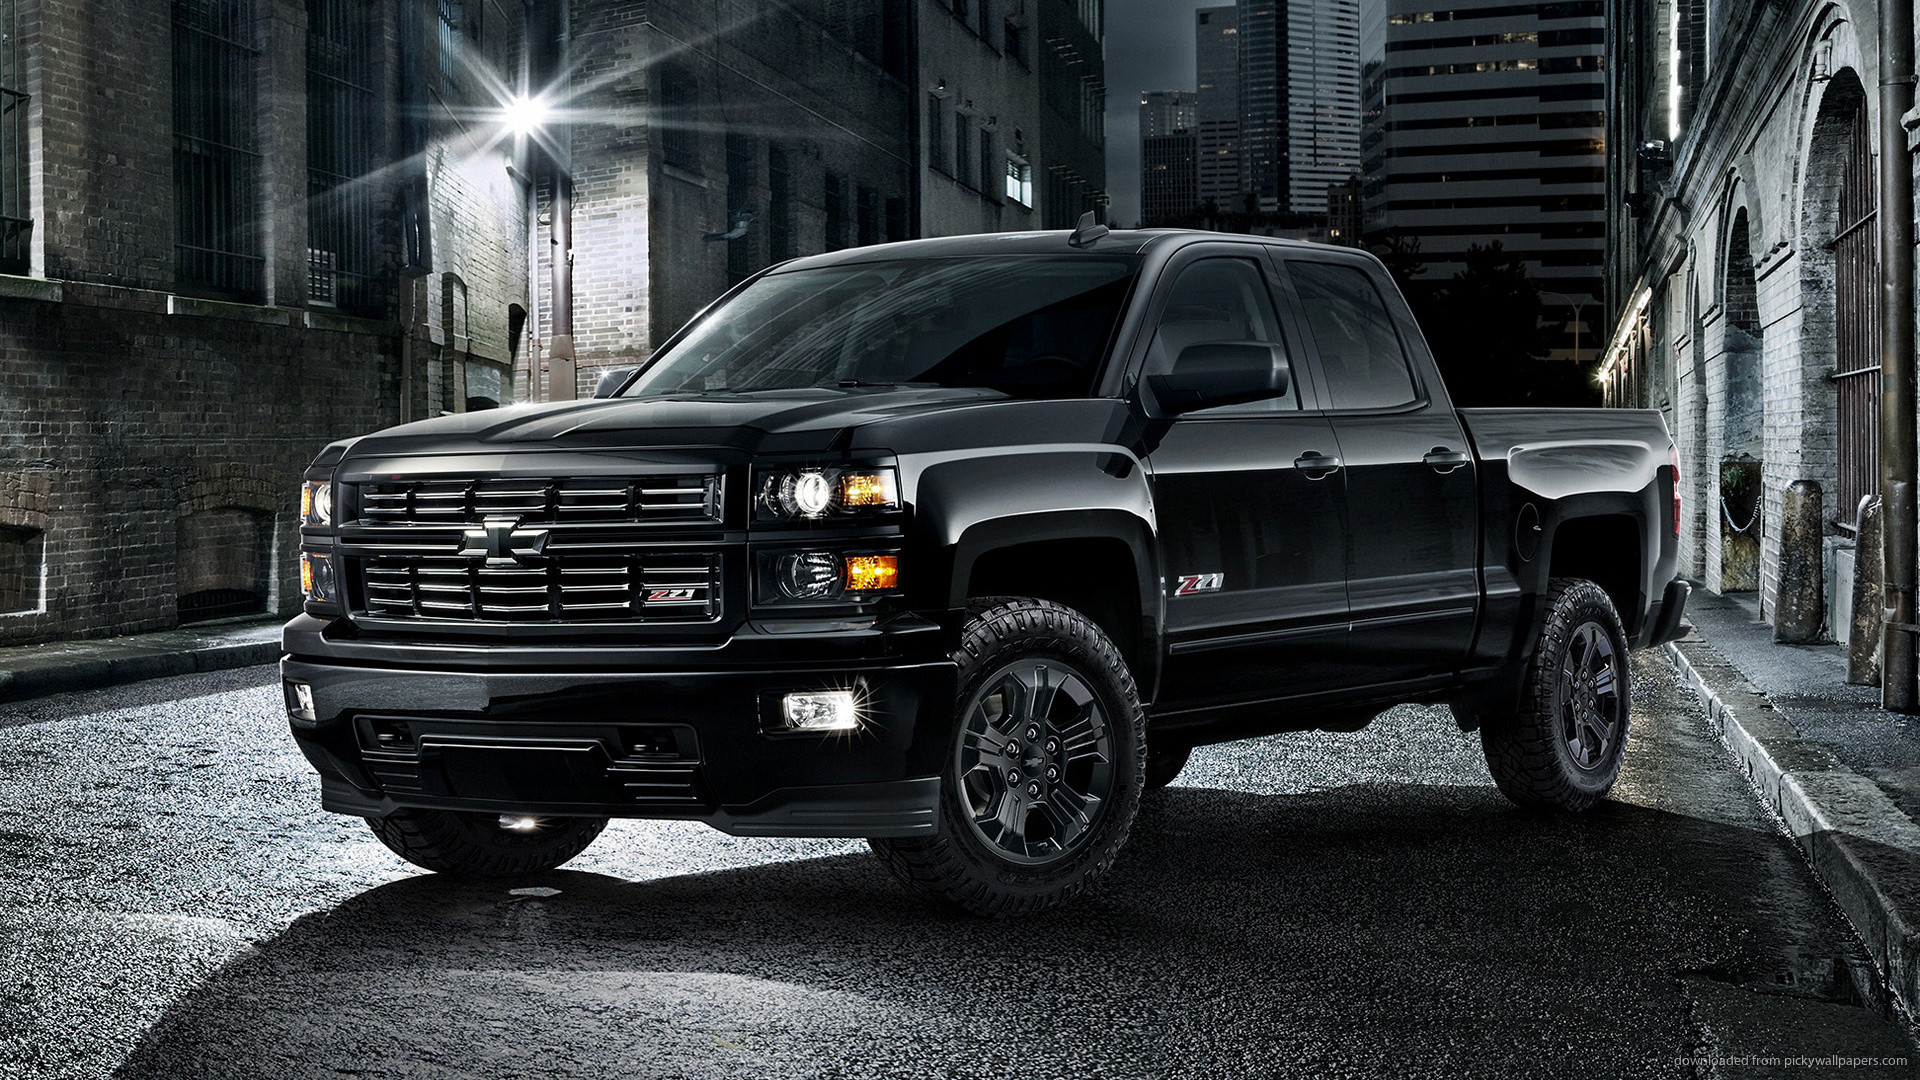 1920x1080 2015 Black Chevrolet Silverado Wallpaper picture